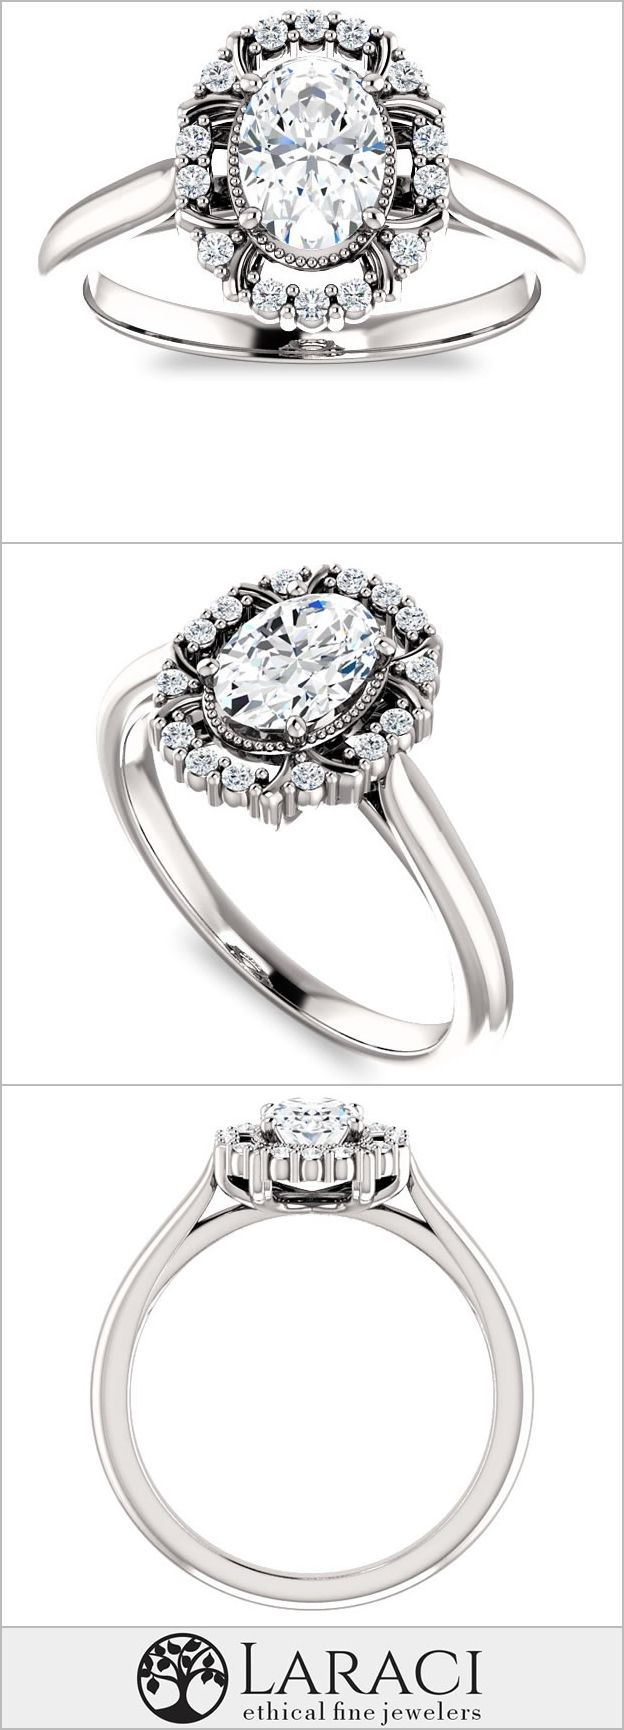 K white gold cathedral halo style engagement ring with milgraine